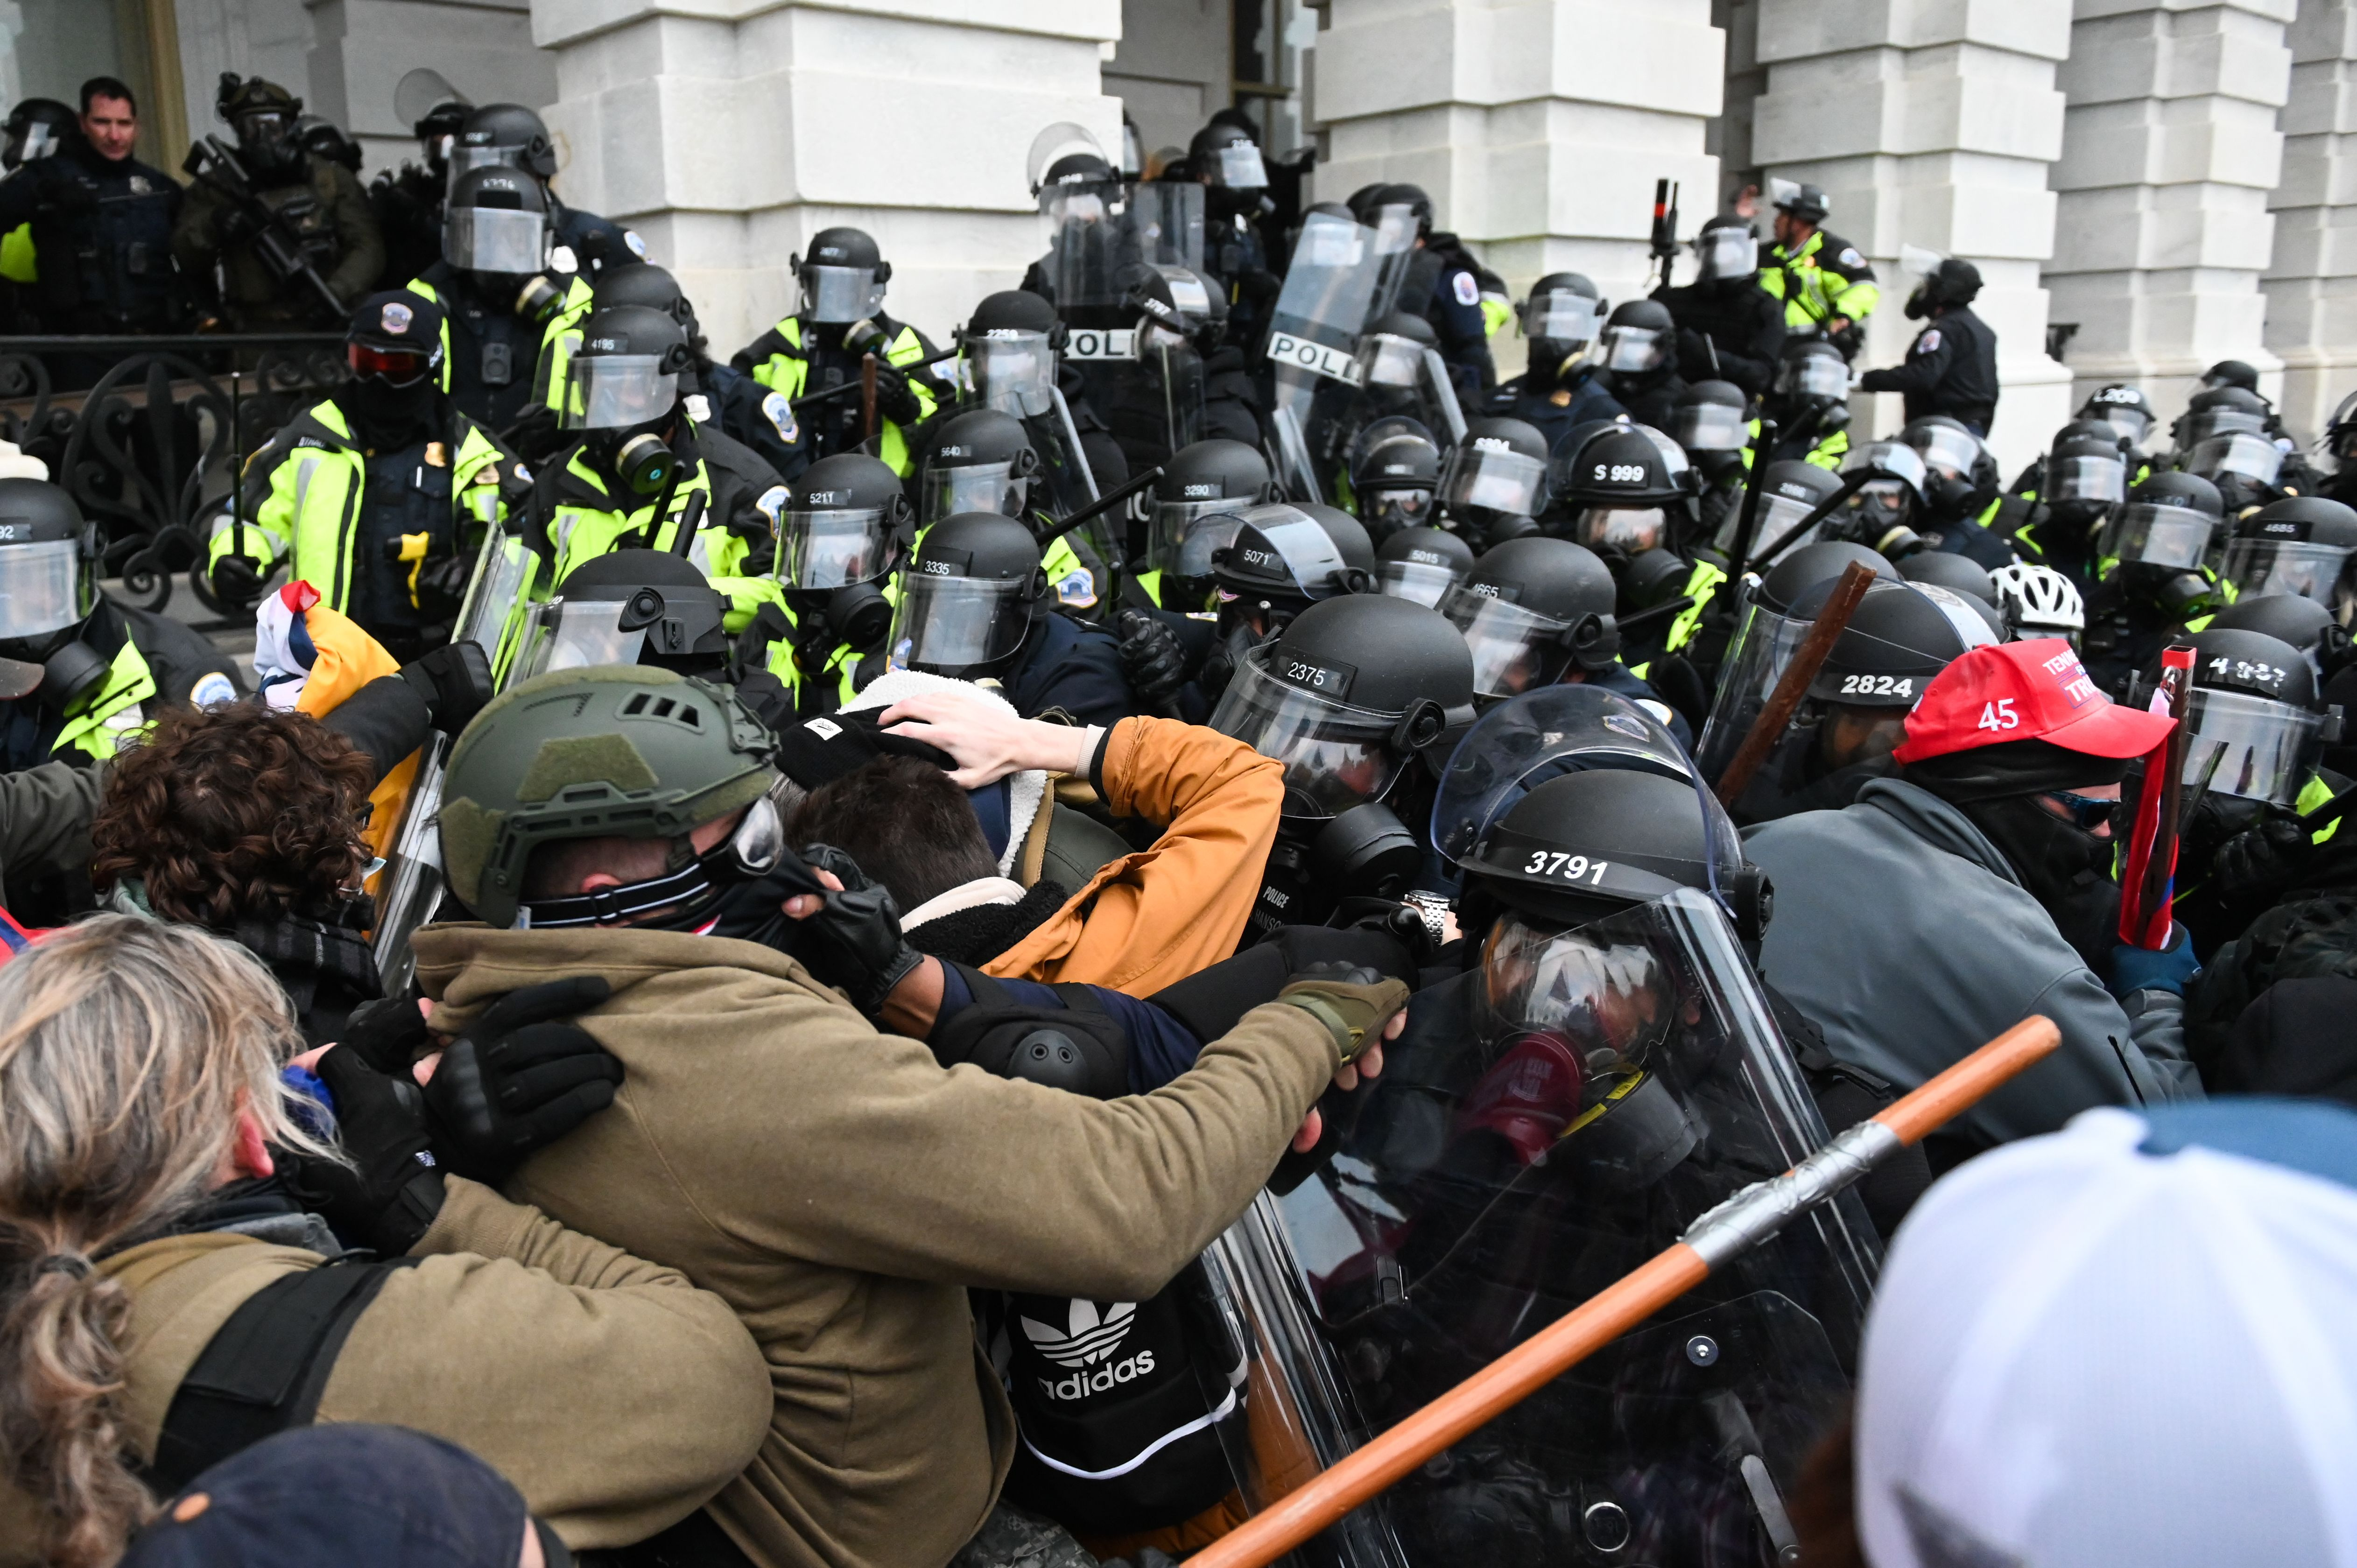 Riot police push back a crowd on January 6, 2021 at the Capitol building in Washington, DC. (Photo by ROBERTO SCHMIDT/AFP via Getty Images)